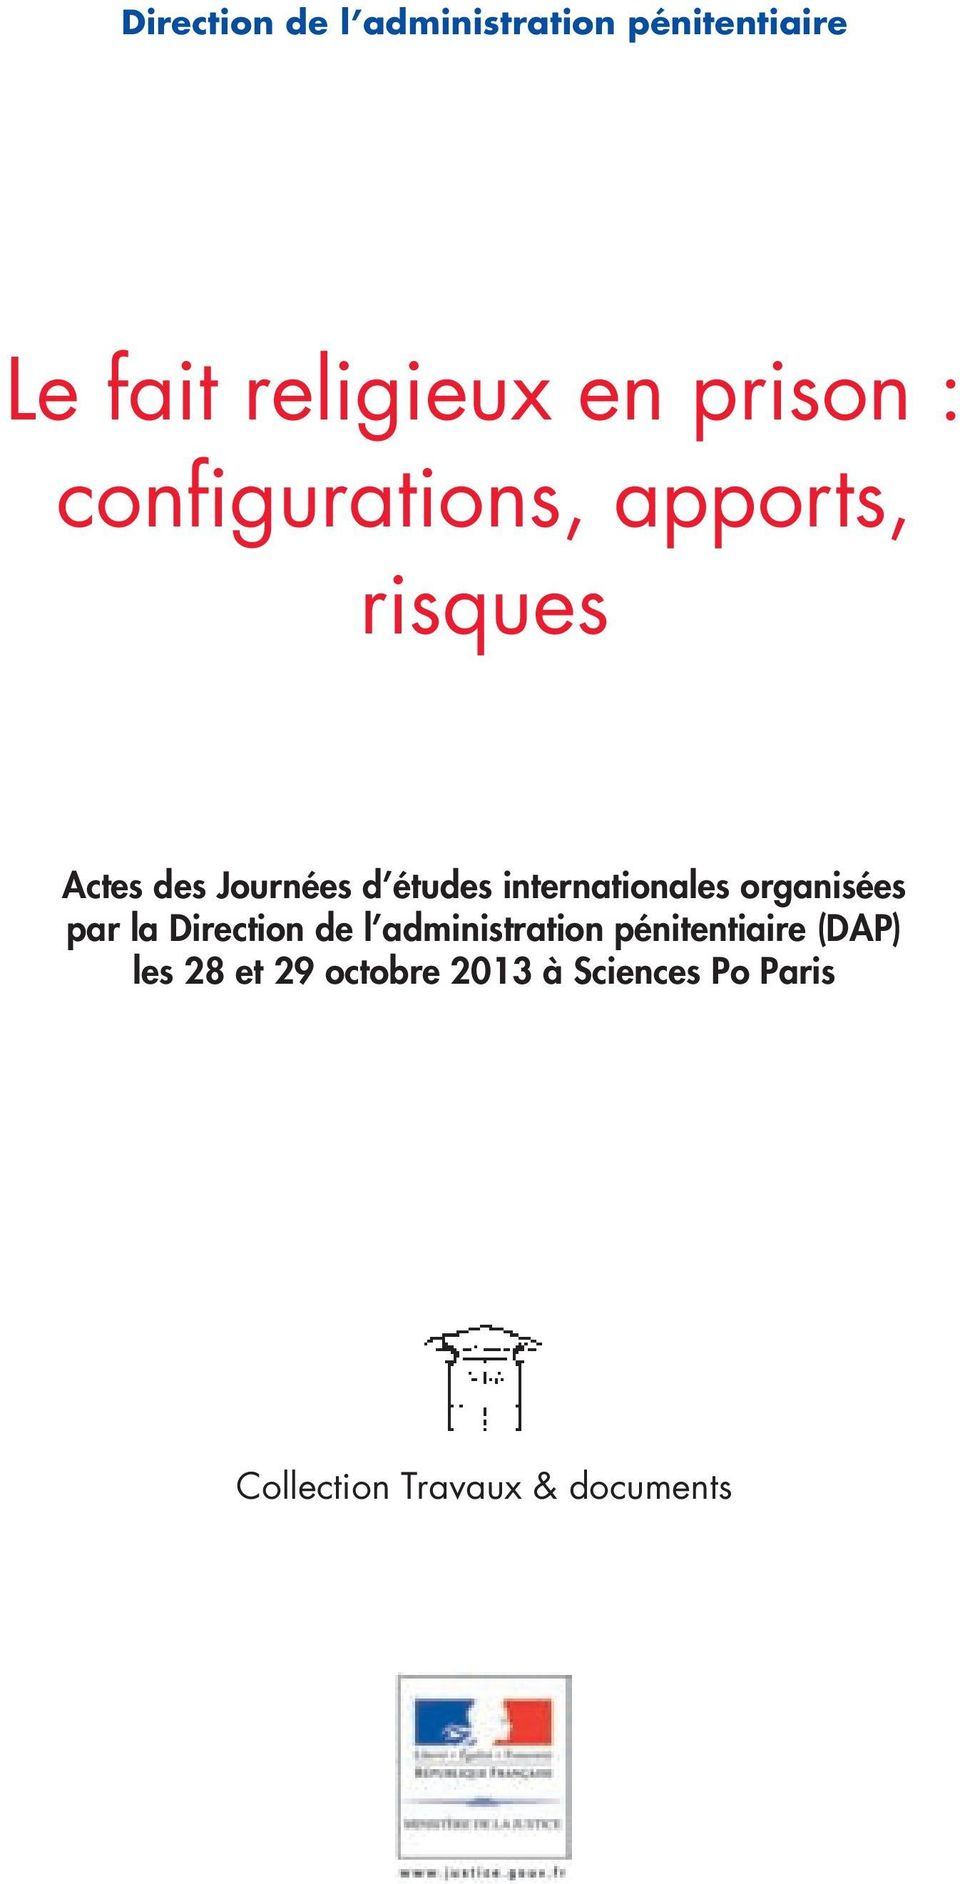 internationales organisées par la Direction de l administration